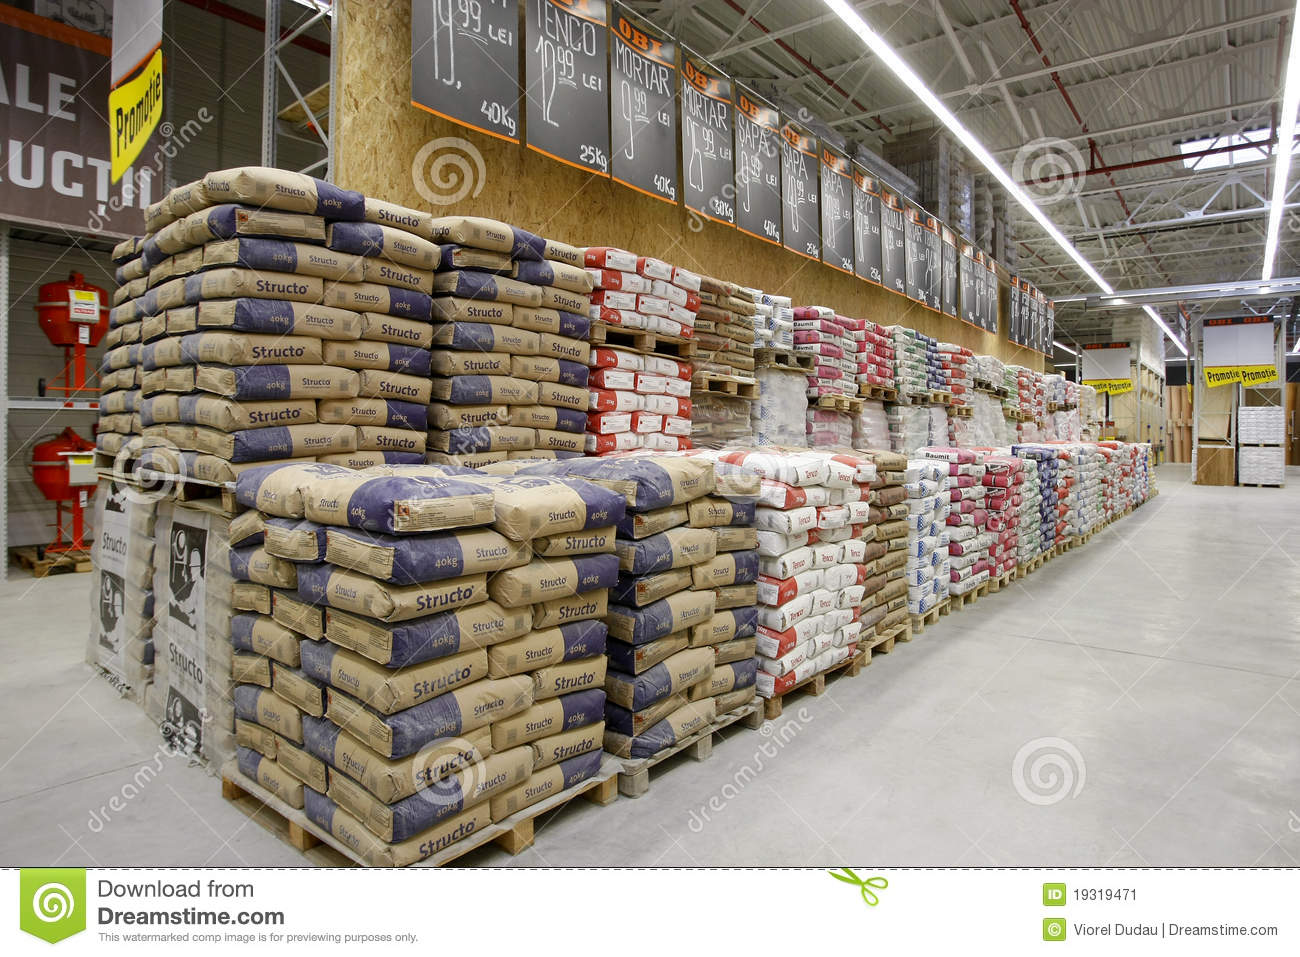 Cement Building Materials : Building materials store editorial photo image of cement